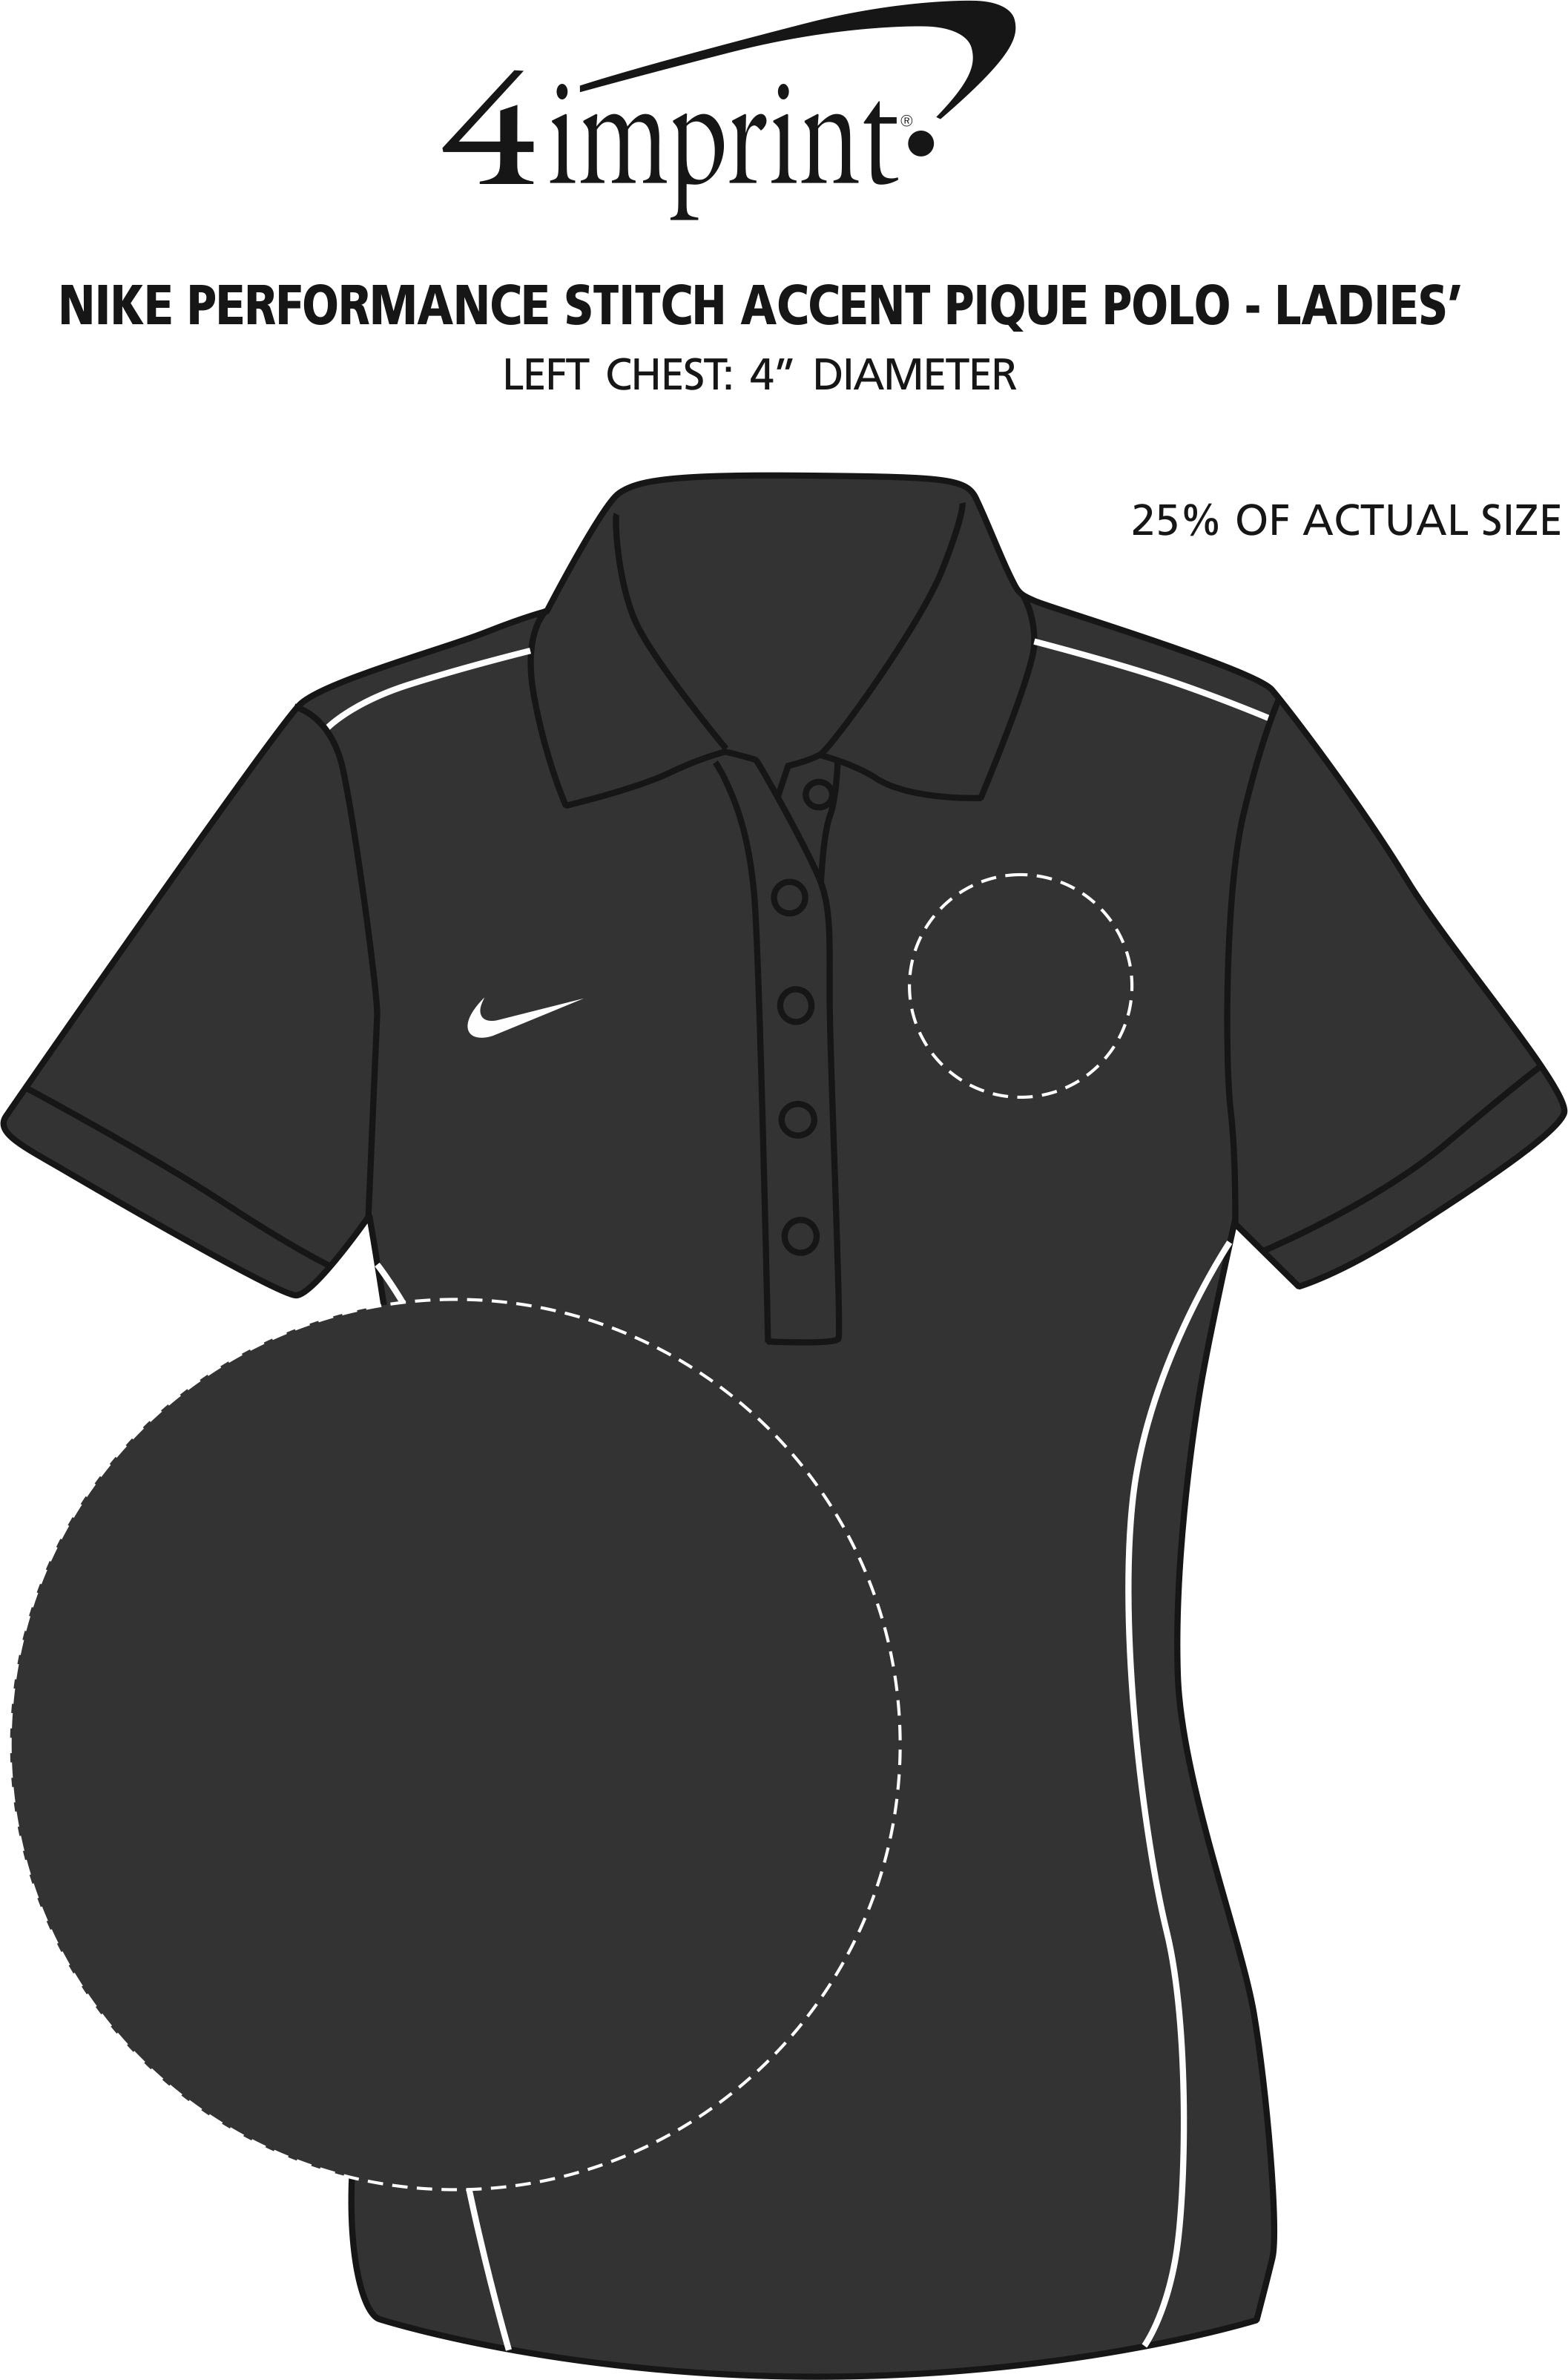 Imprint Area of Nike Performance Stitch Accent Pique Polo - Ladies'